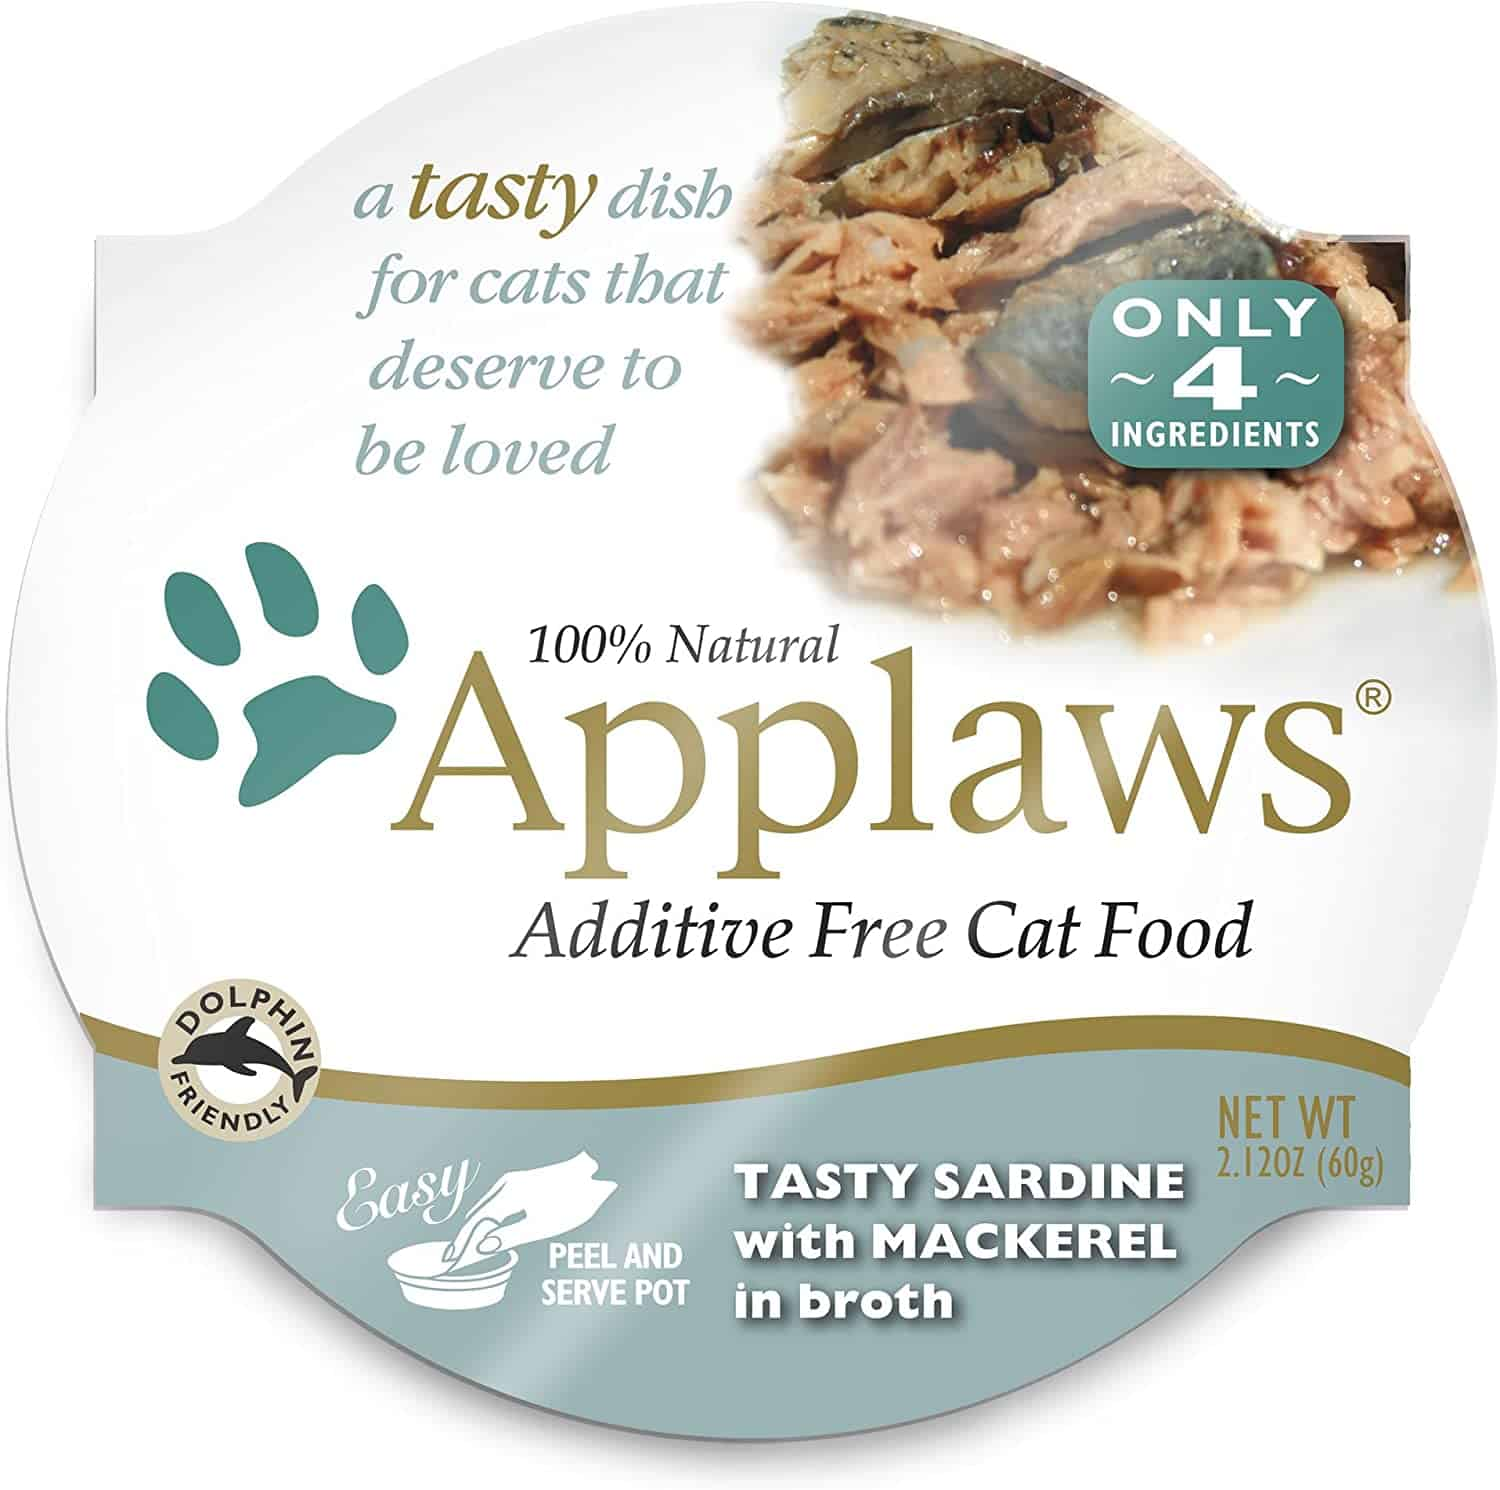 2021 Applaws Cat Food Reviews: Naturally Nutritious Cat Food 11